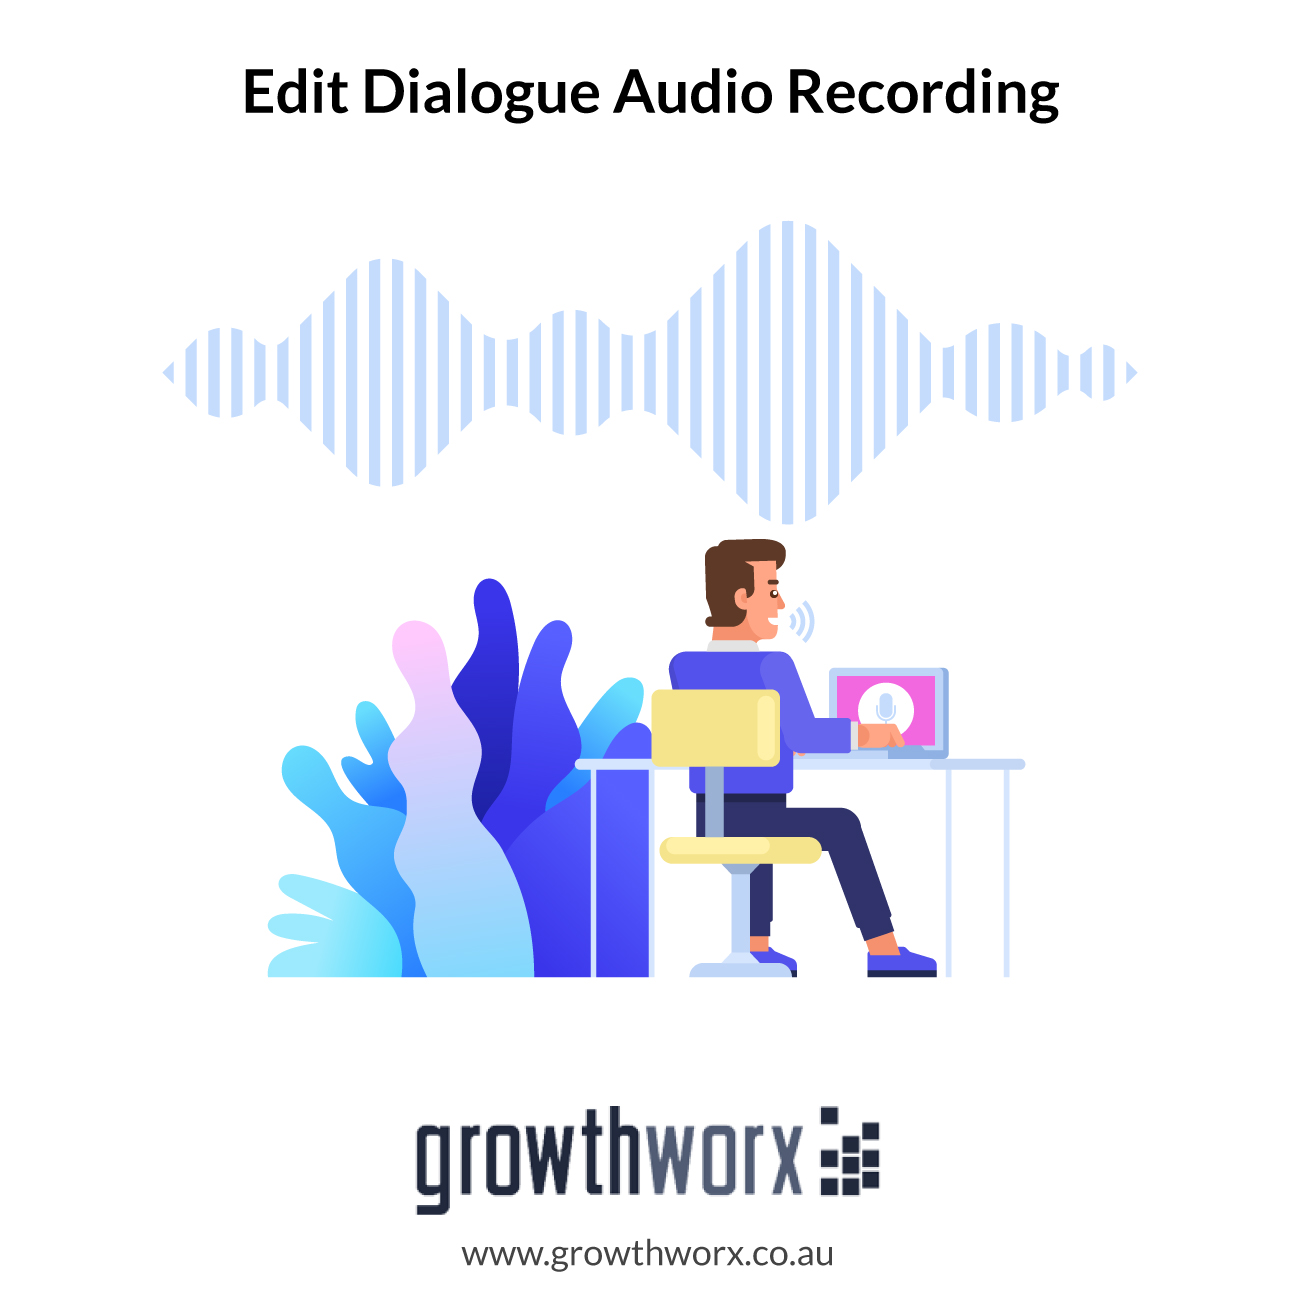 I will professionally edit your dialogue audio recording 1